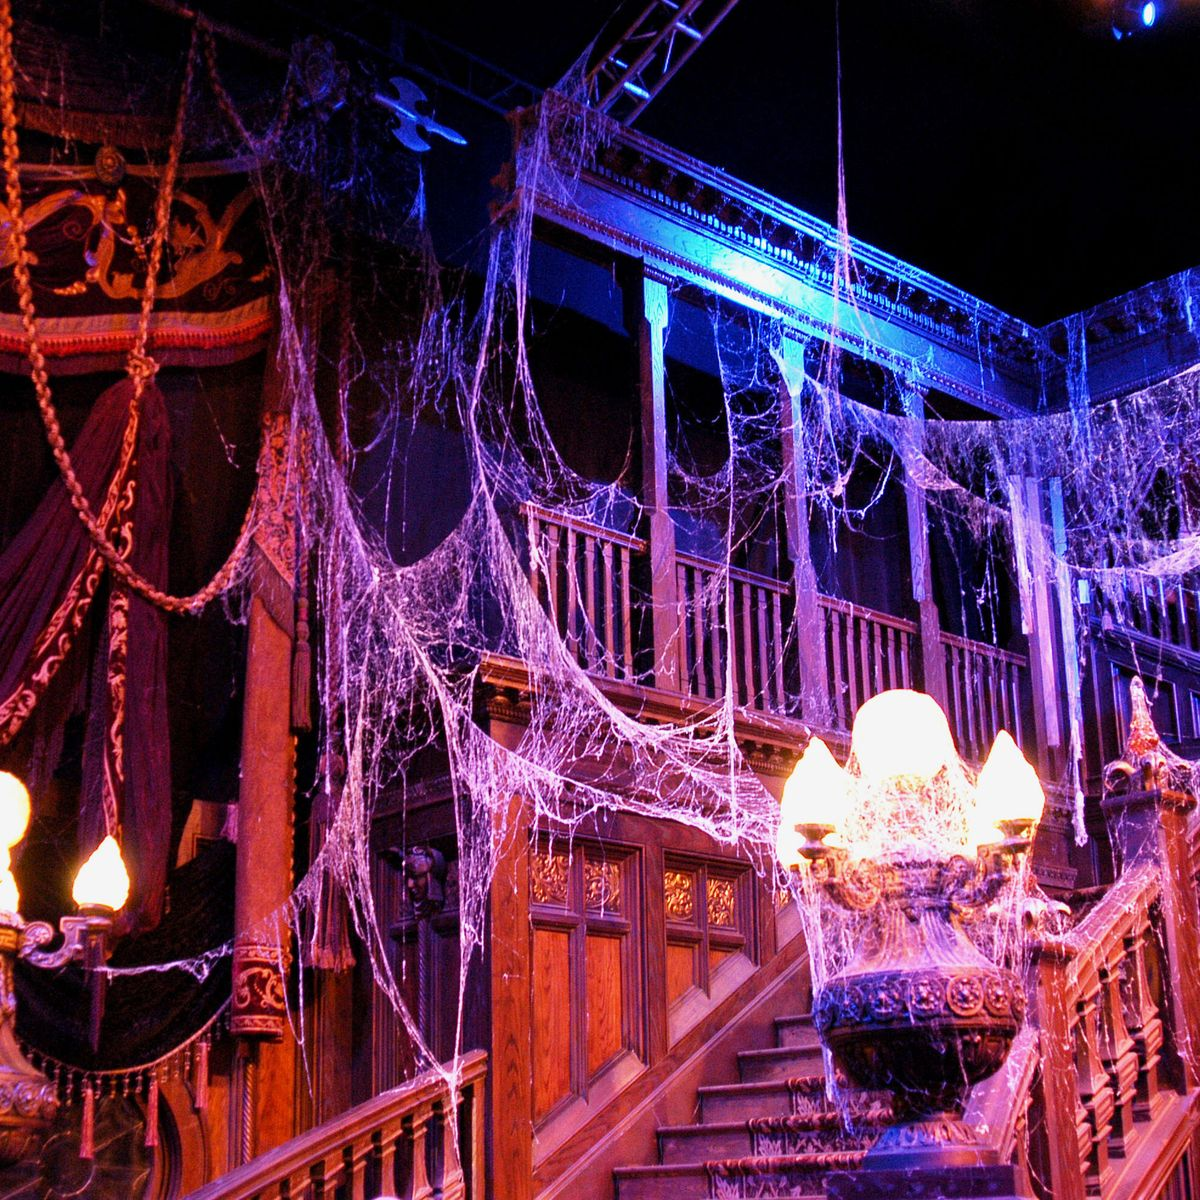 The Best Halloween Decor According To Haunted House Experts